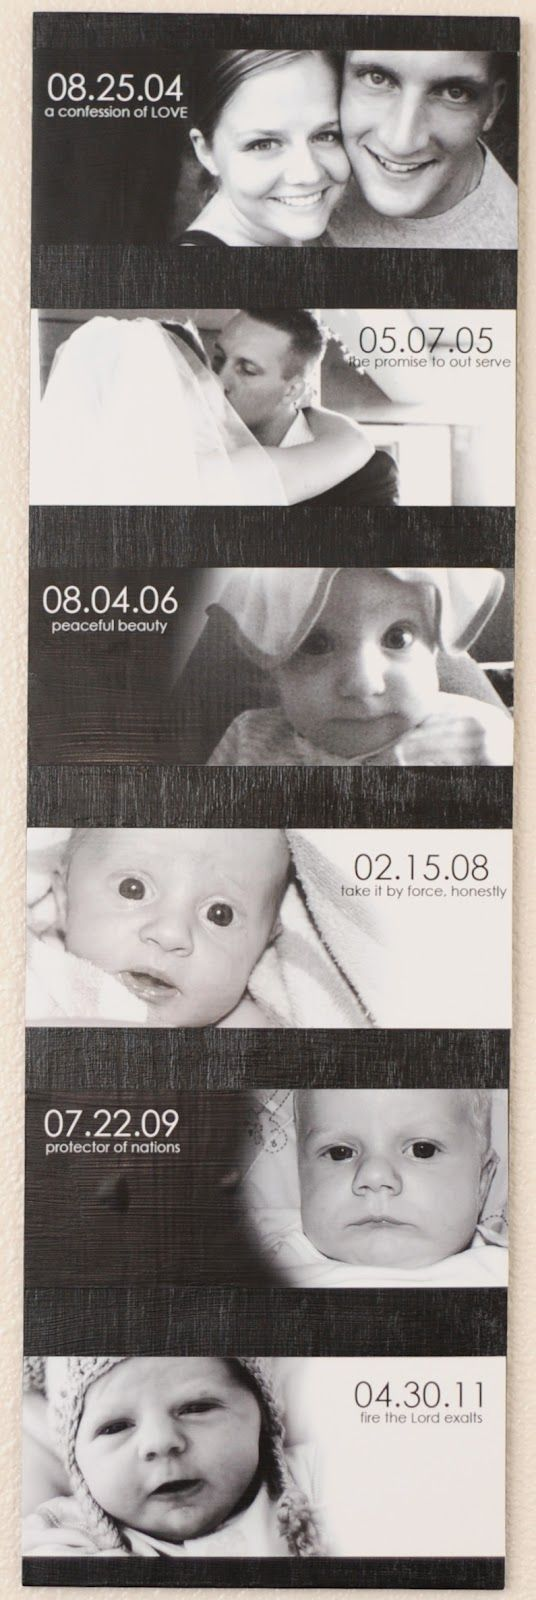 Combining important dates in life with photos : )